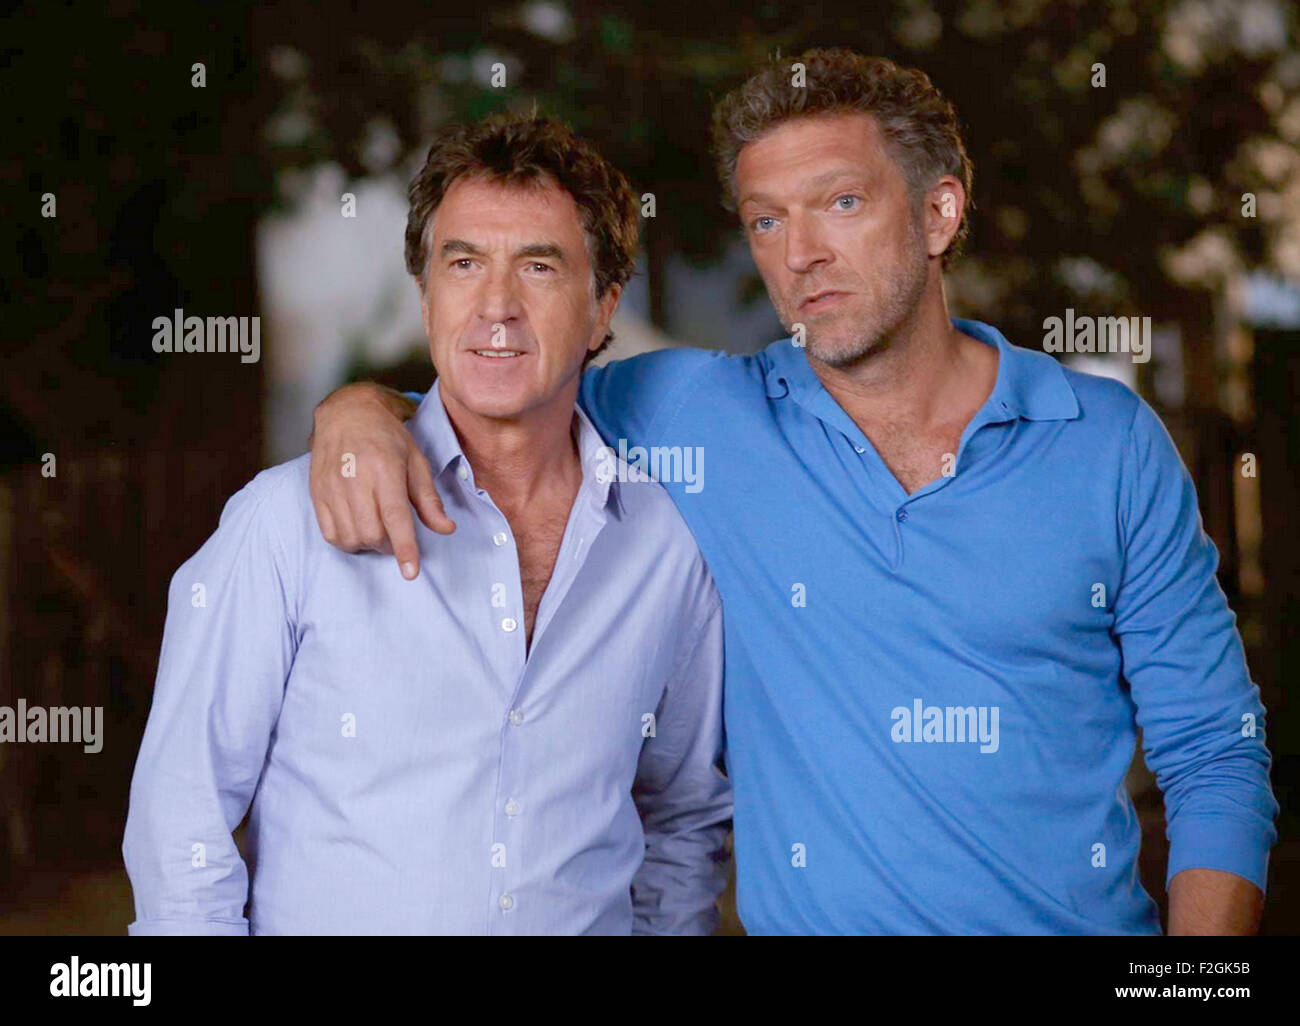 ONE WILD MOMENT 2015 Mars Distribution film with Francois Cluzet (at left) and Vincent Cassel - Stock Image